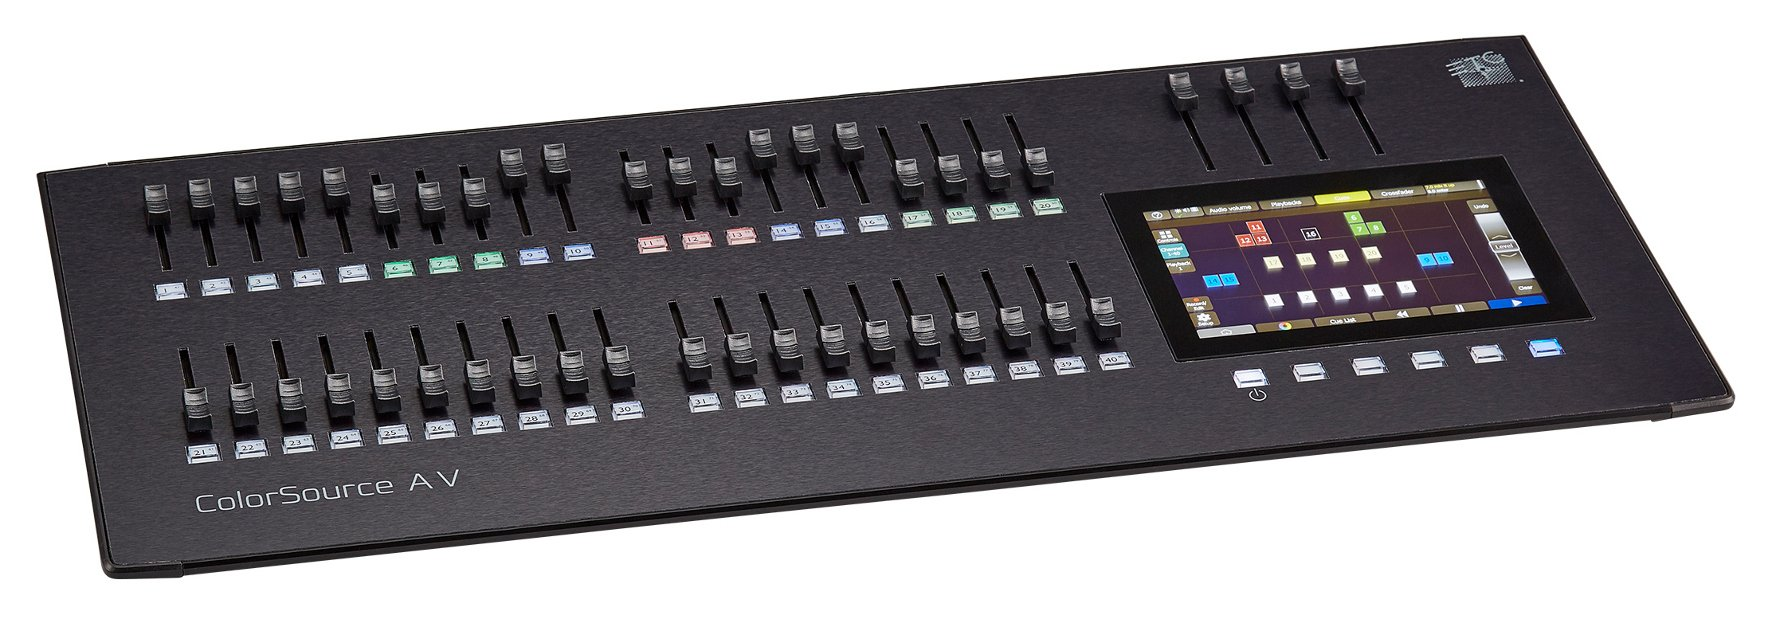 40 Fader Lighting Console with HDMI, Network, and Audio Features